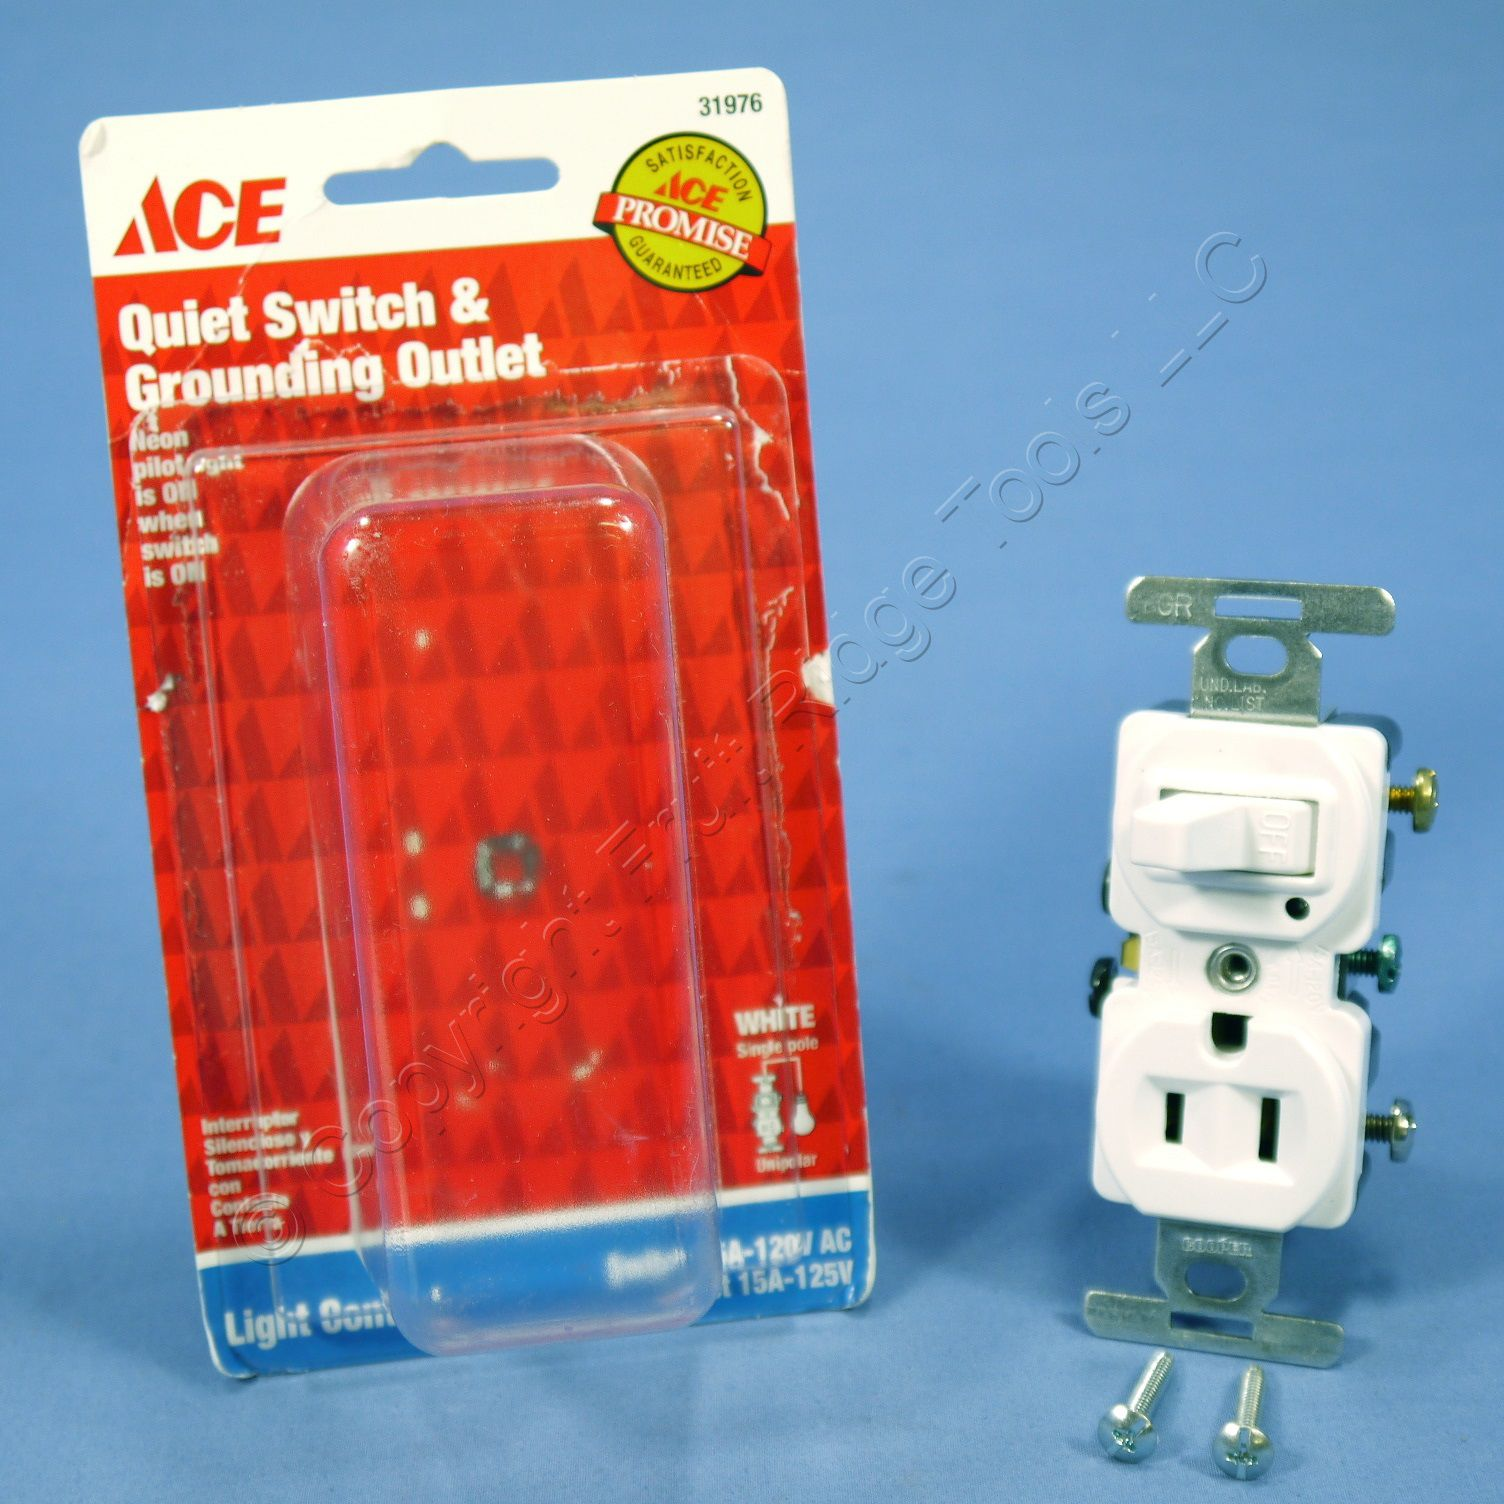 Wall Plug Light Switch : Ace White Pilot Light Toggle Switch Wall Outlet Receptacle 31976 eBay